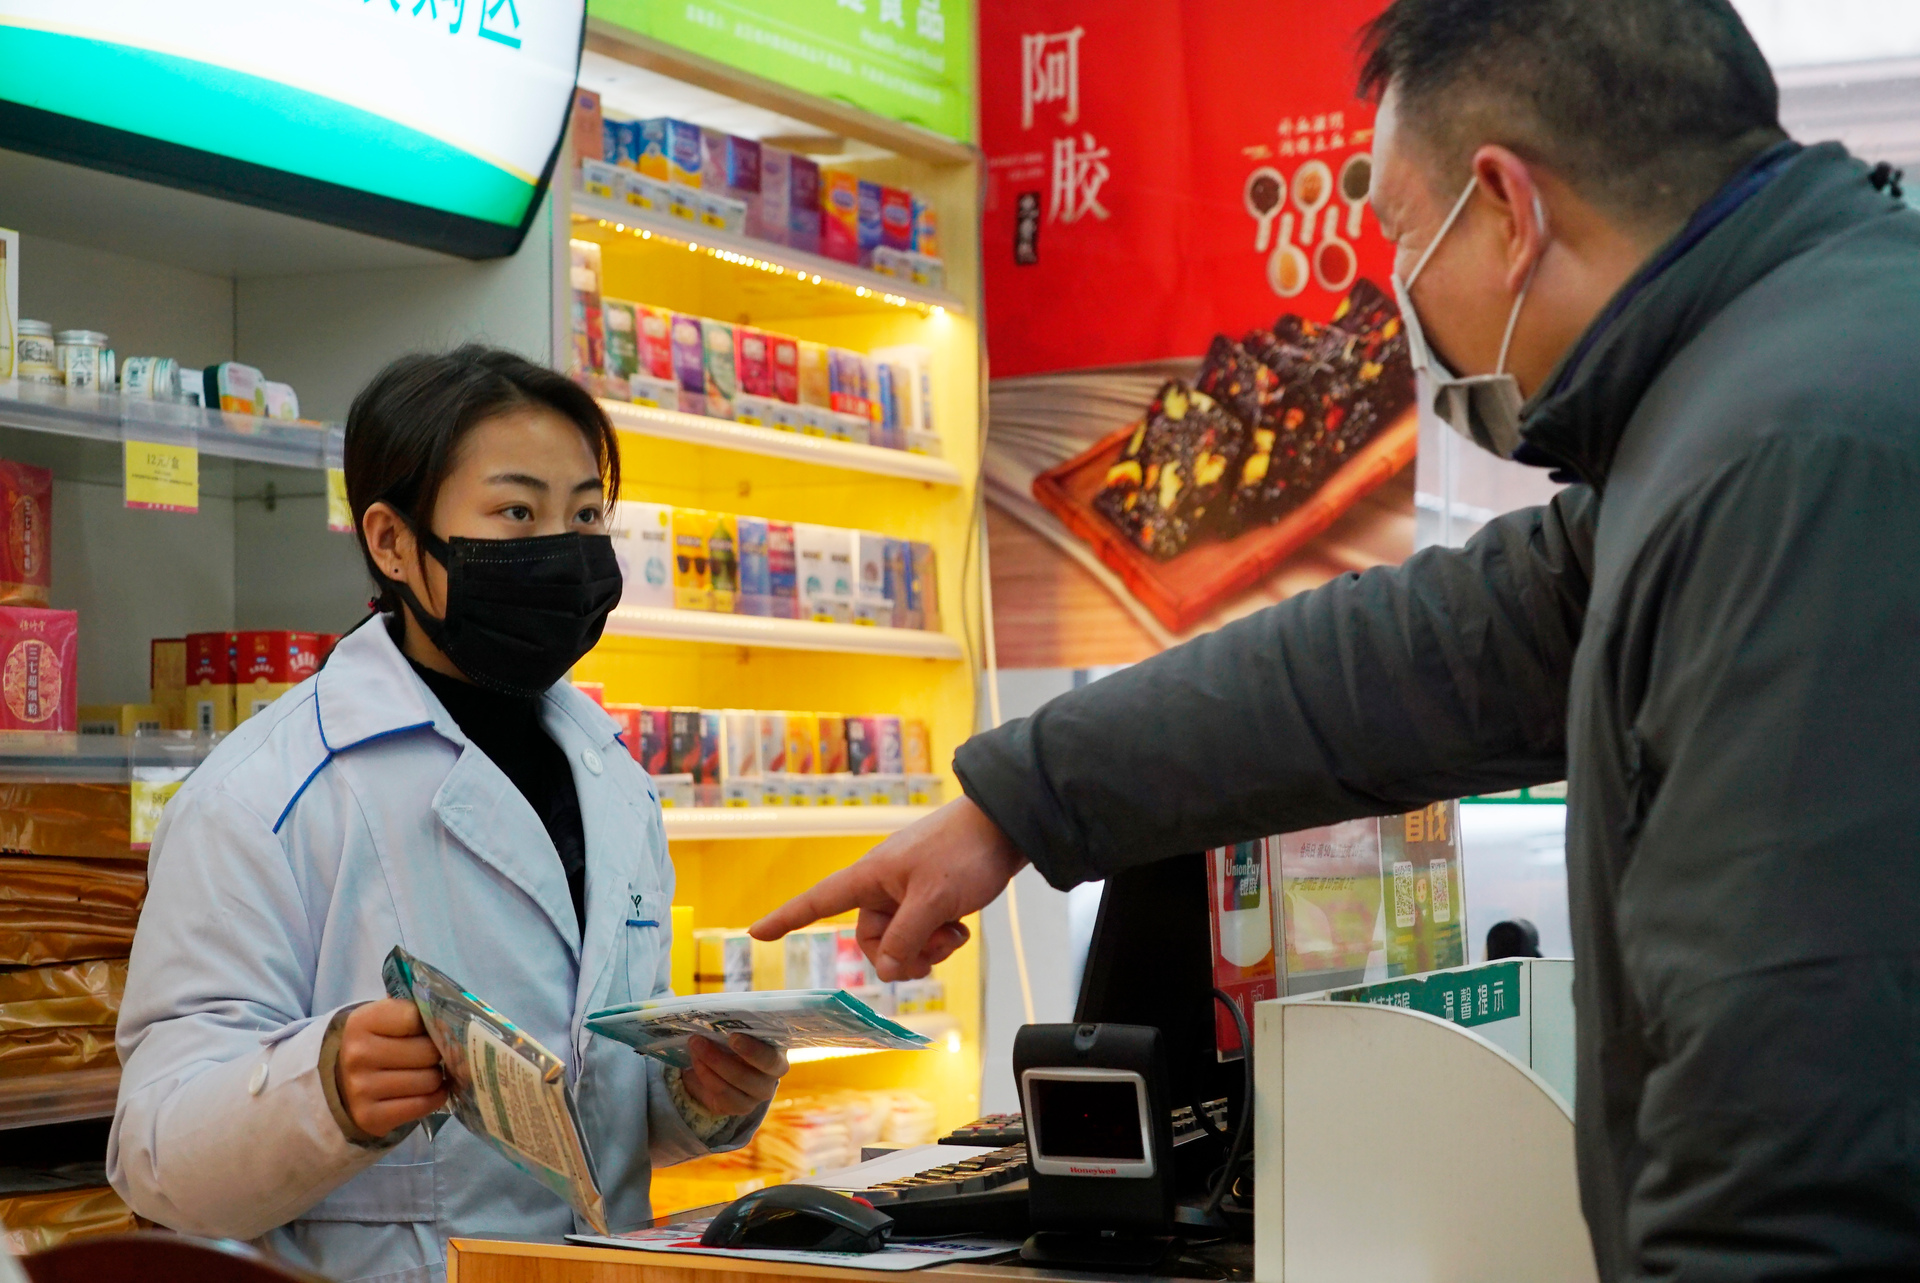 All you need to know about the China outbreak virus